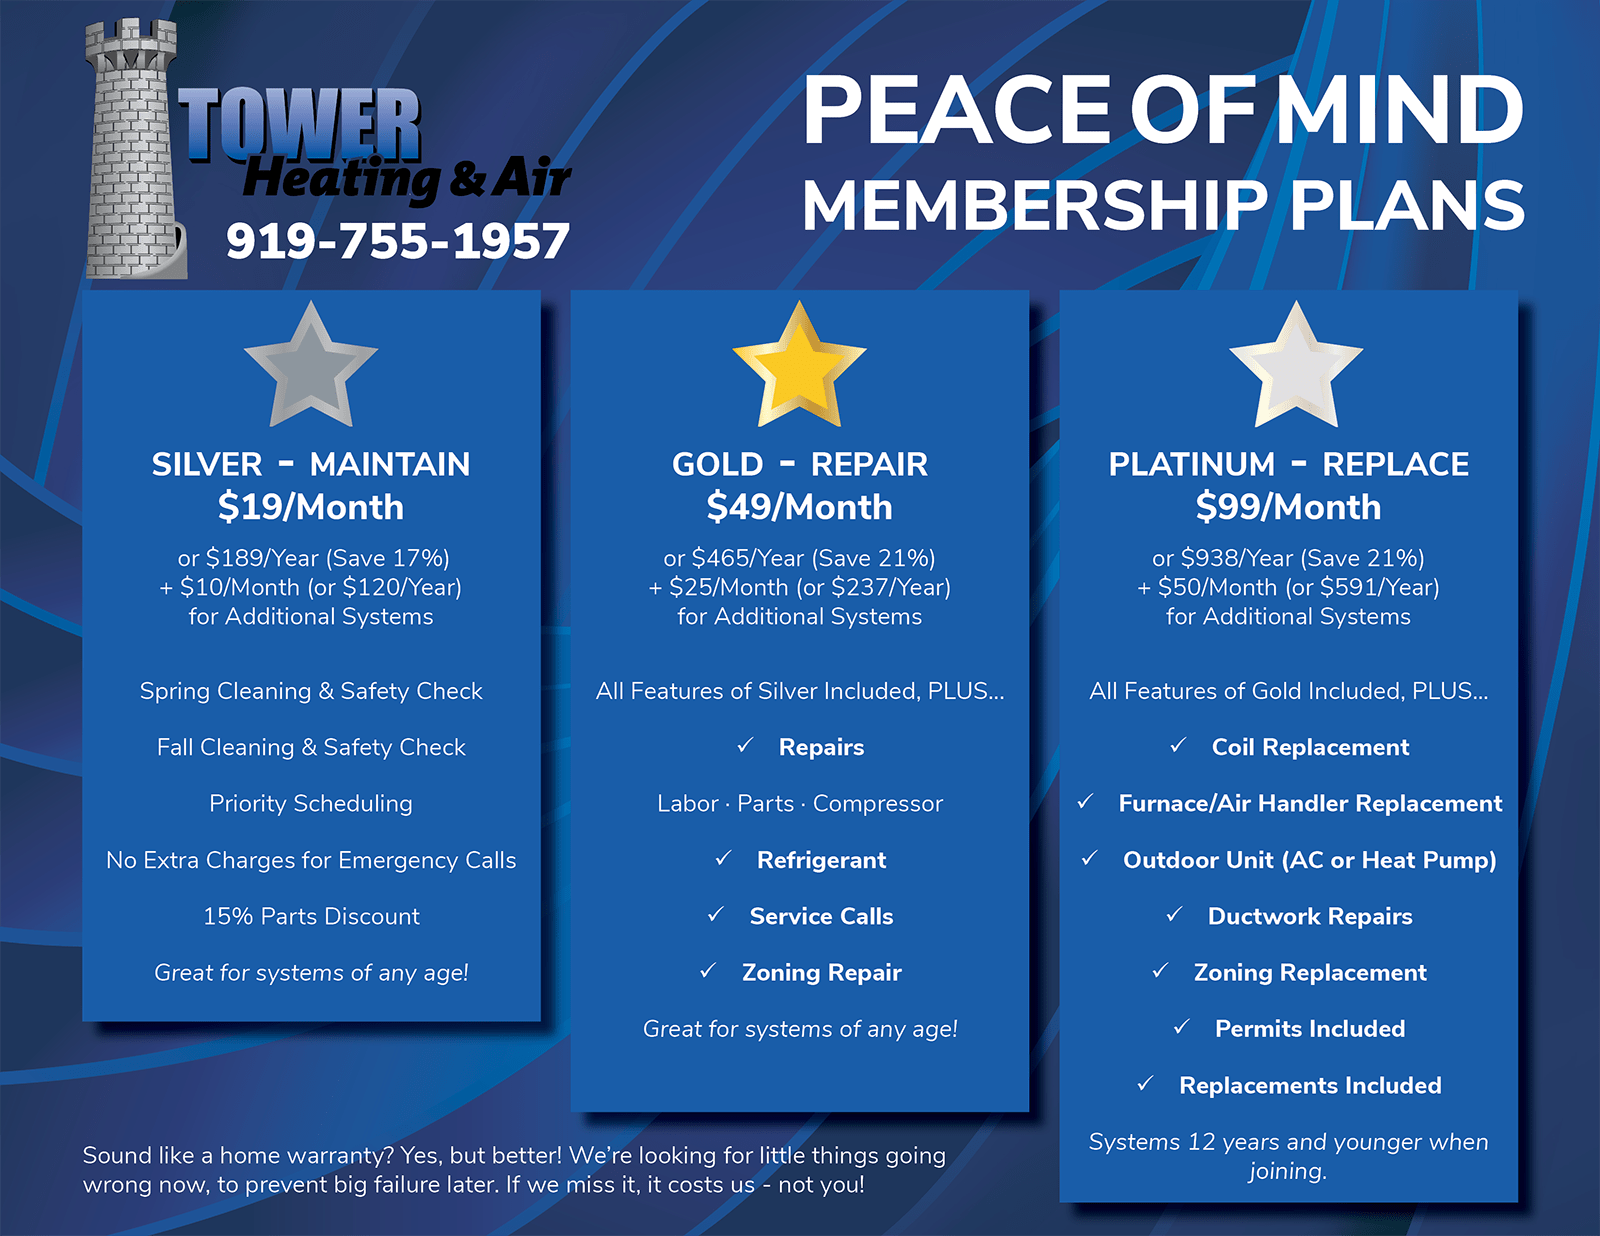 Peace of Mind Membership